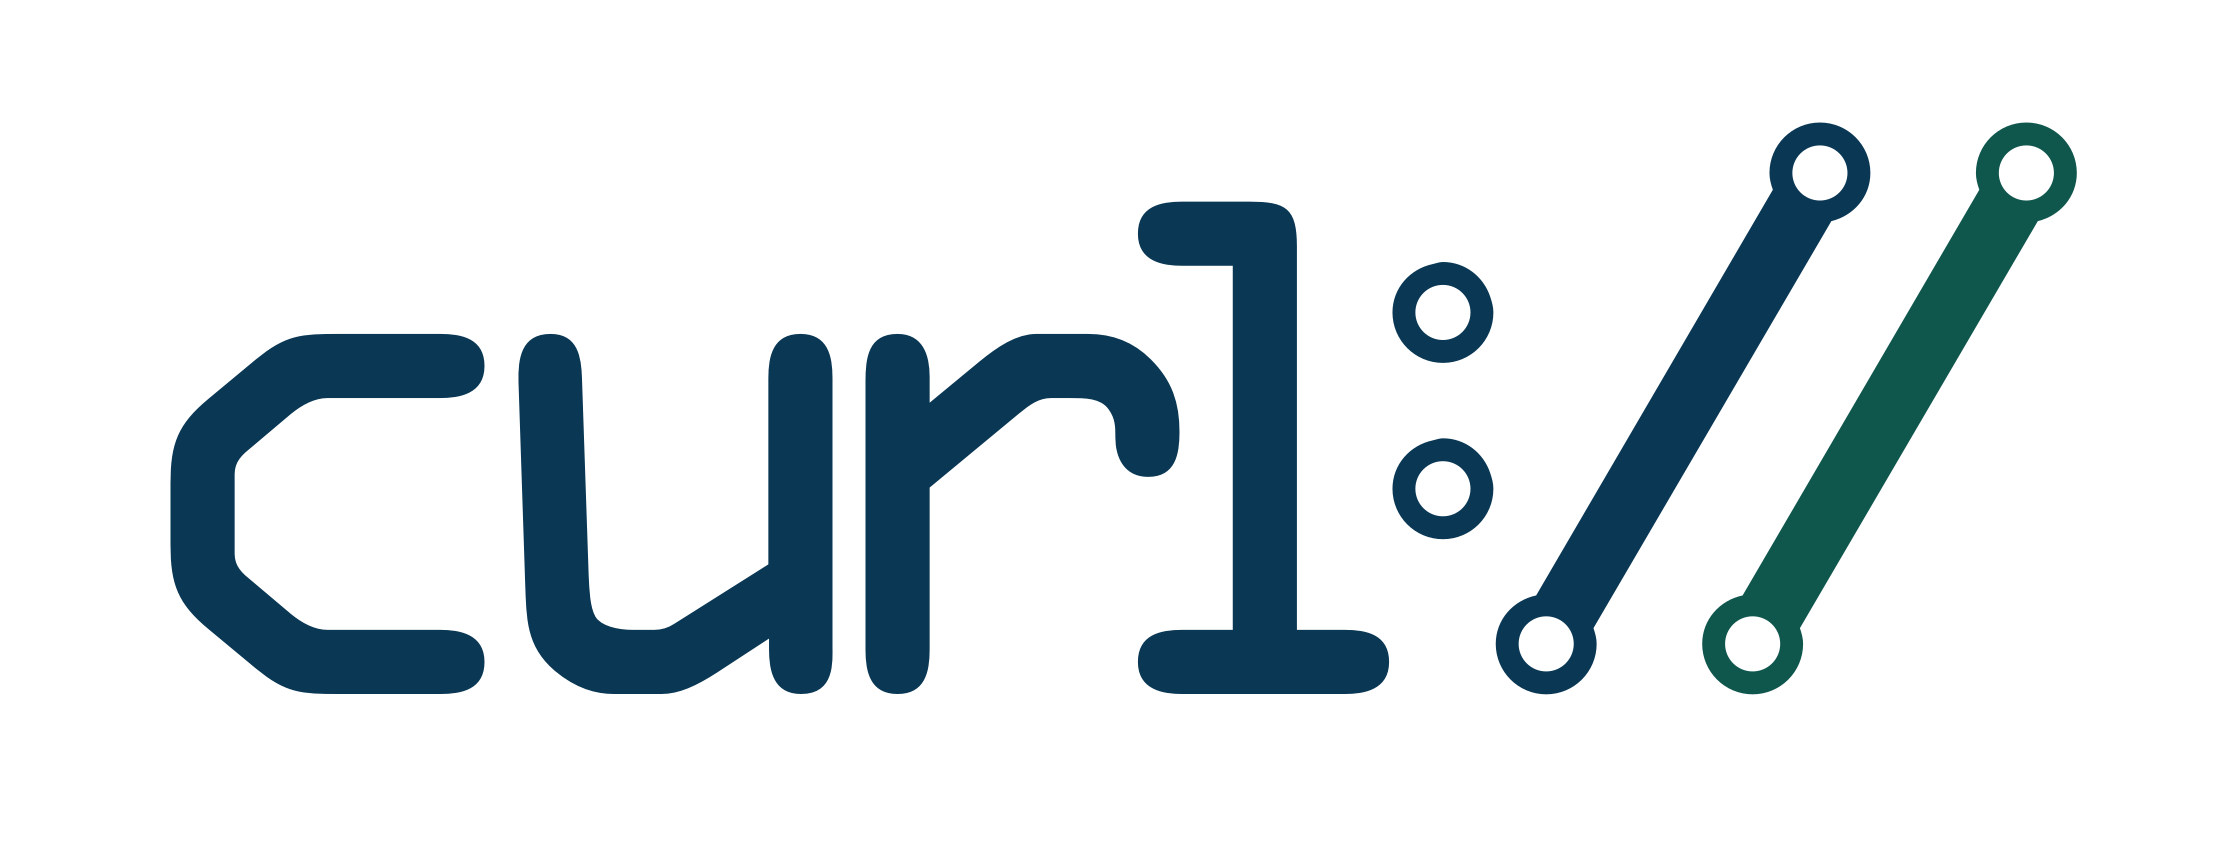 good_curl_logo.png